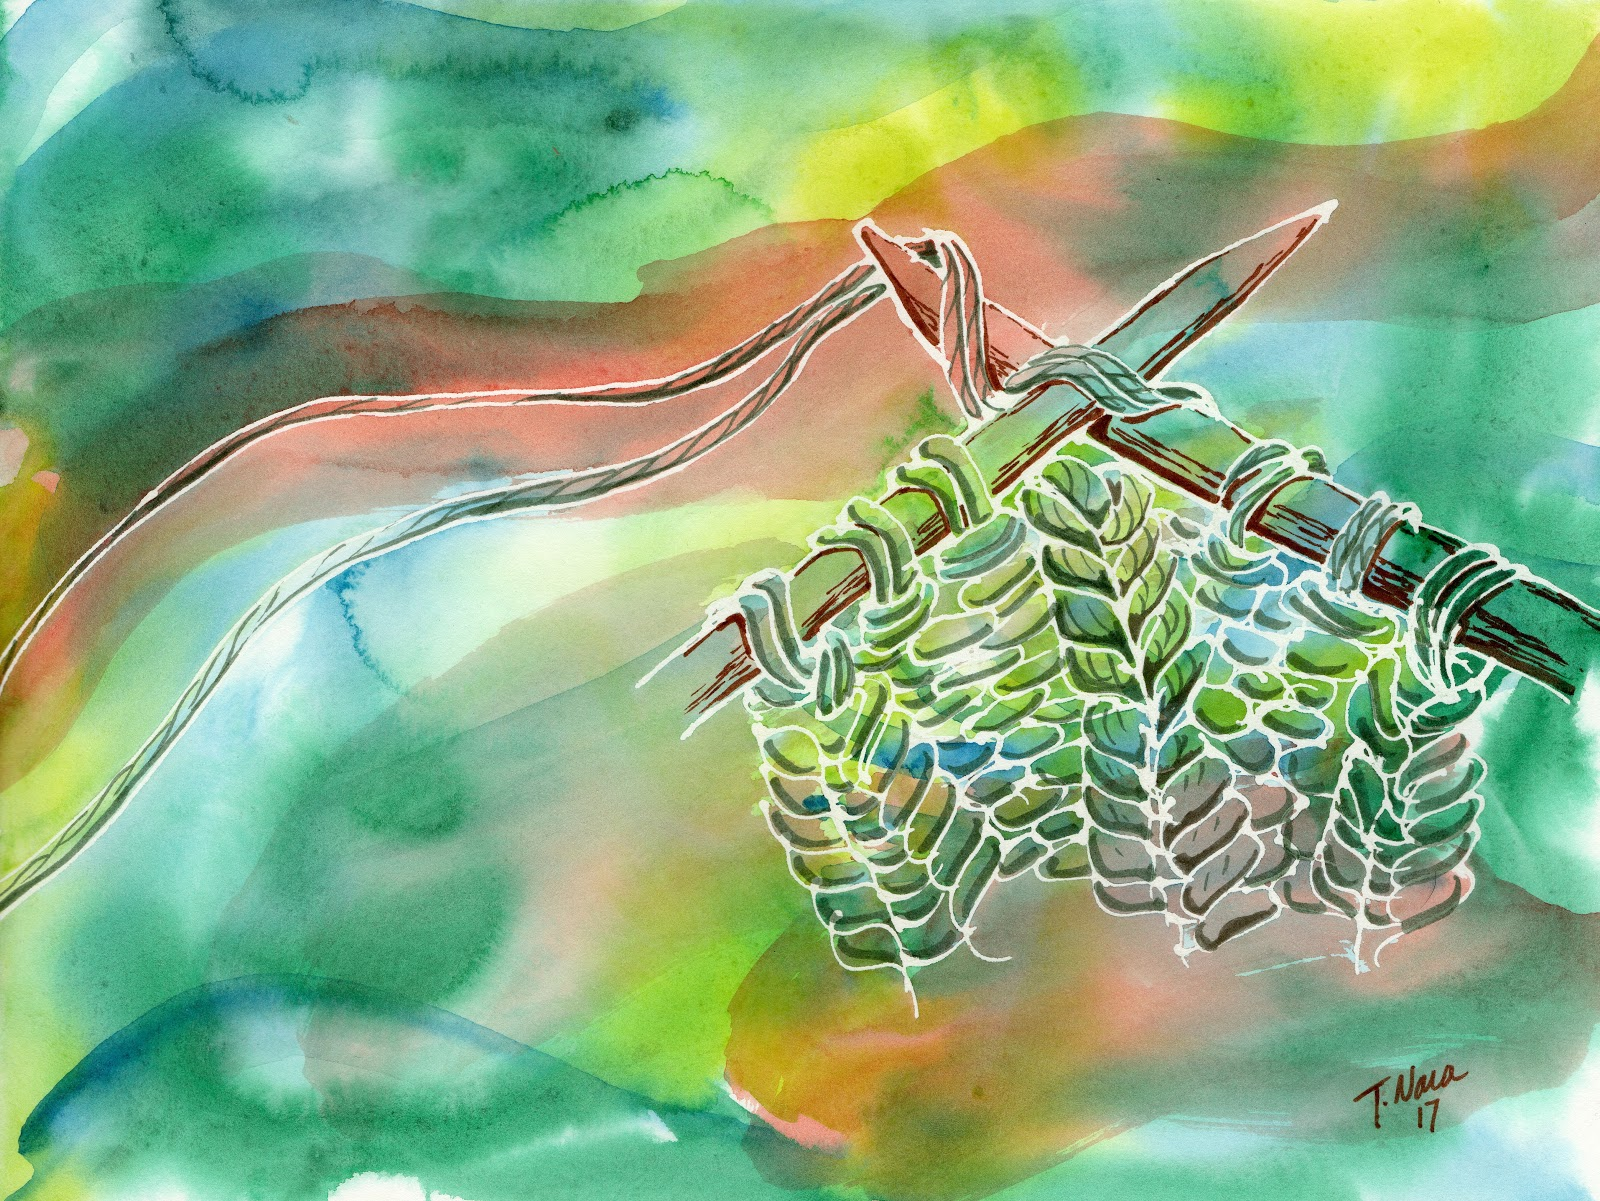 green and orange abstract painting of knitting needles